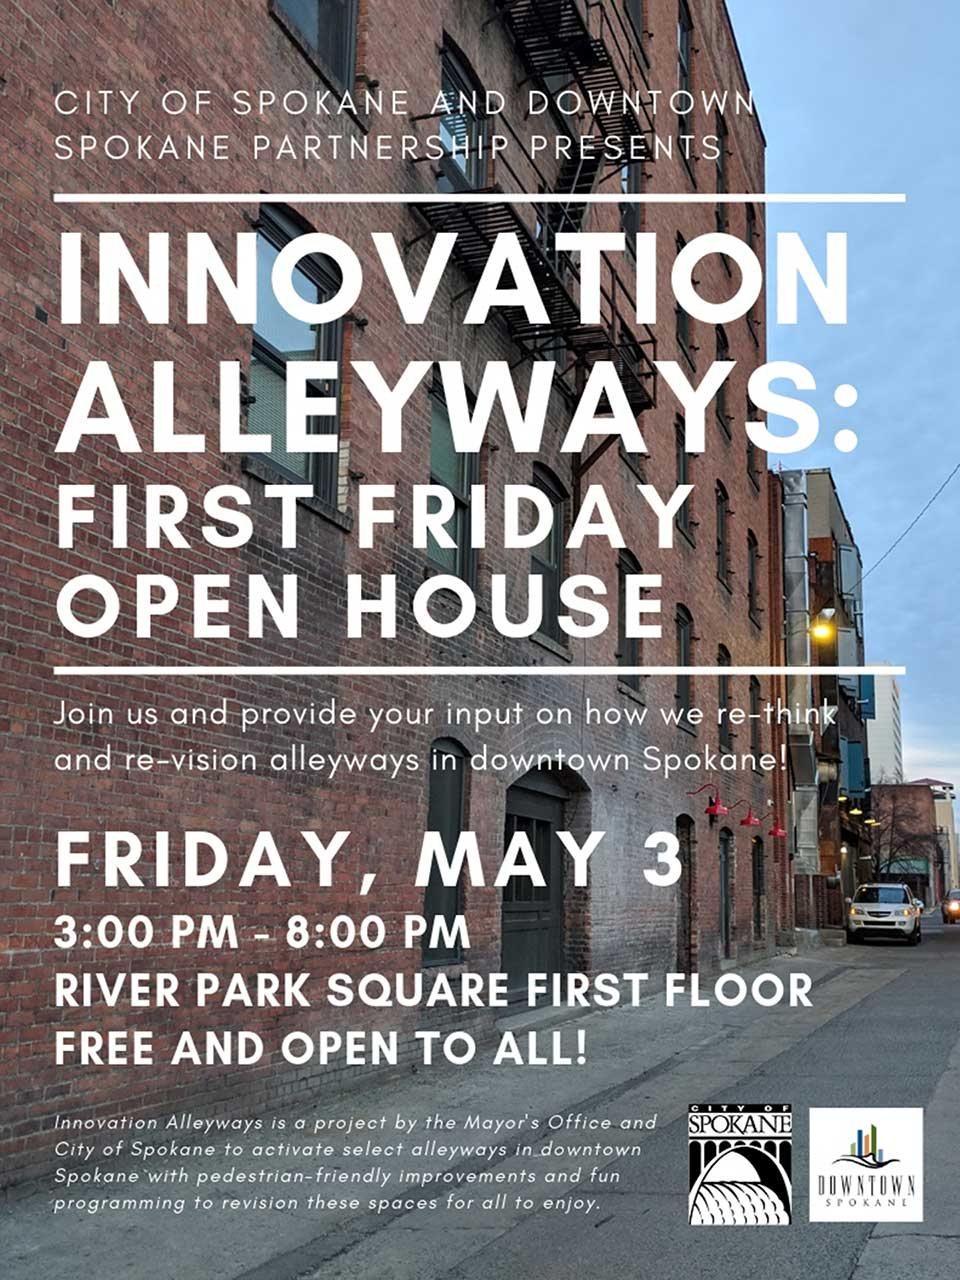 Innovation Alleyways First Friday Flyer